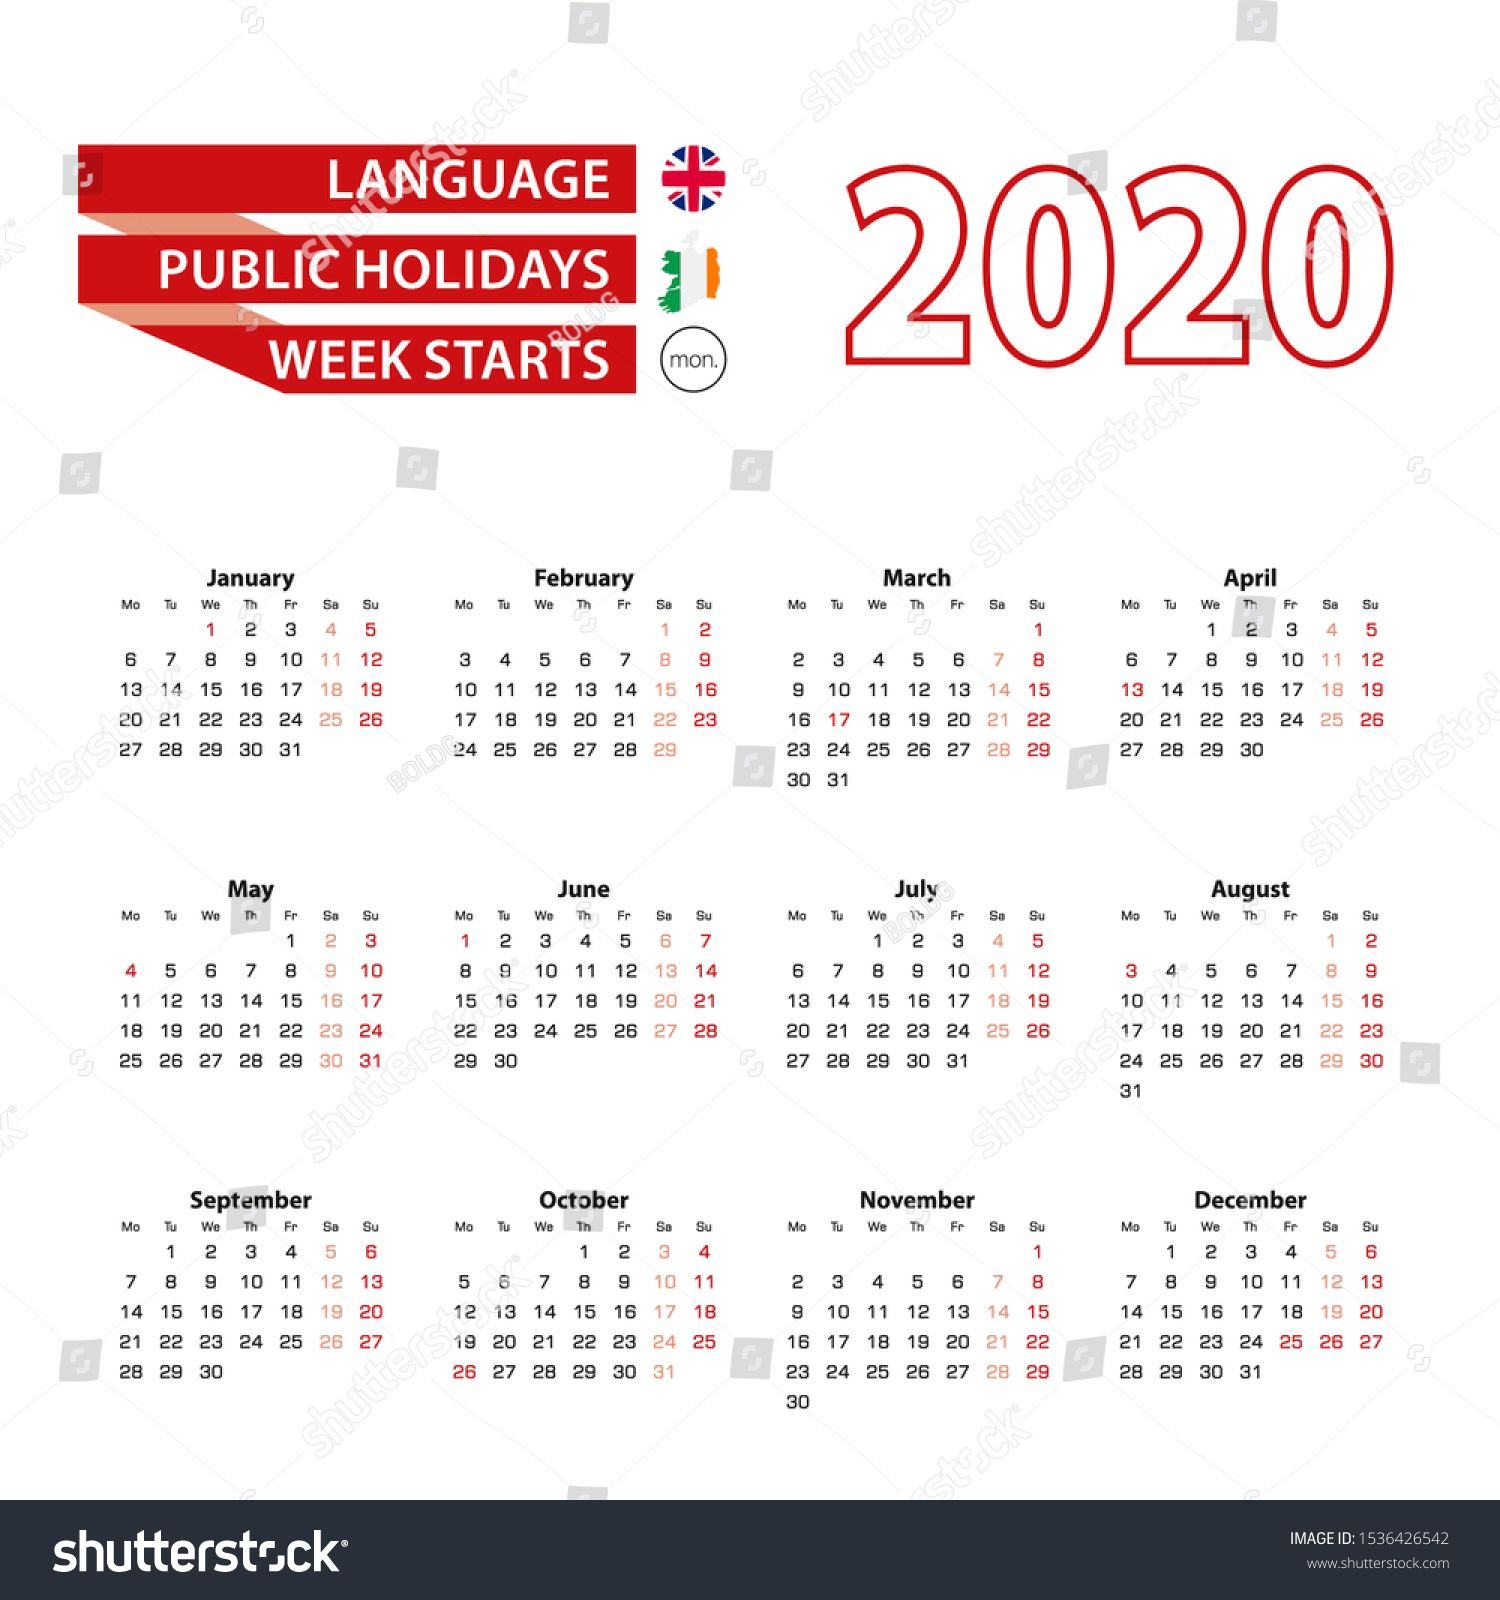 Calendar 2020 In English Language With Public Holidays The Country Of Ireland In Year 2020 Week Calendar Printables Calendar Template Templates Printable Free